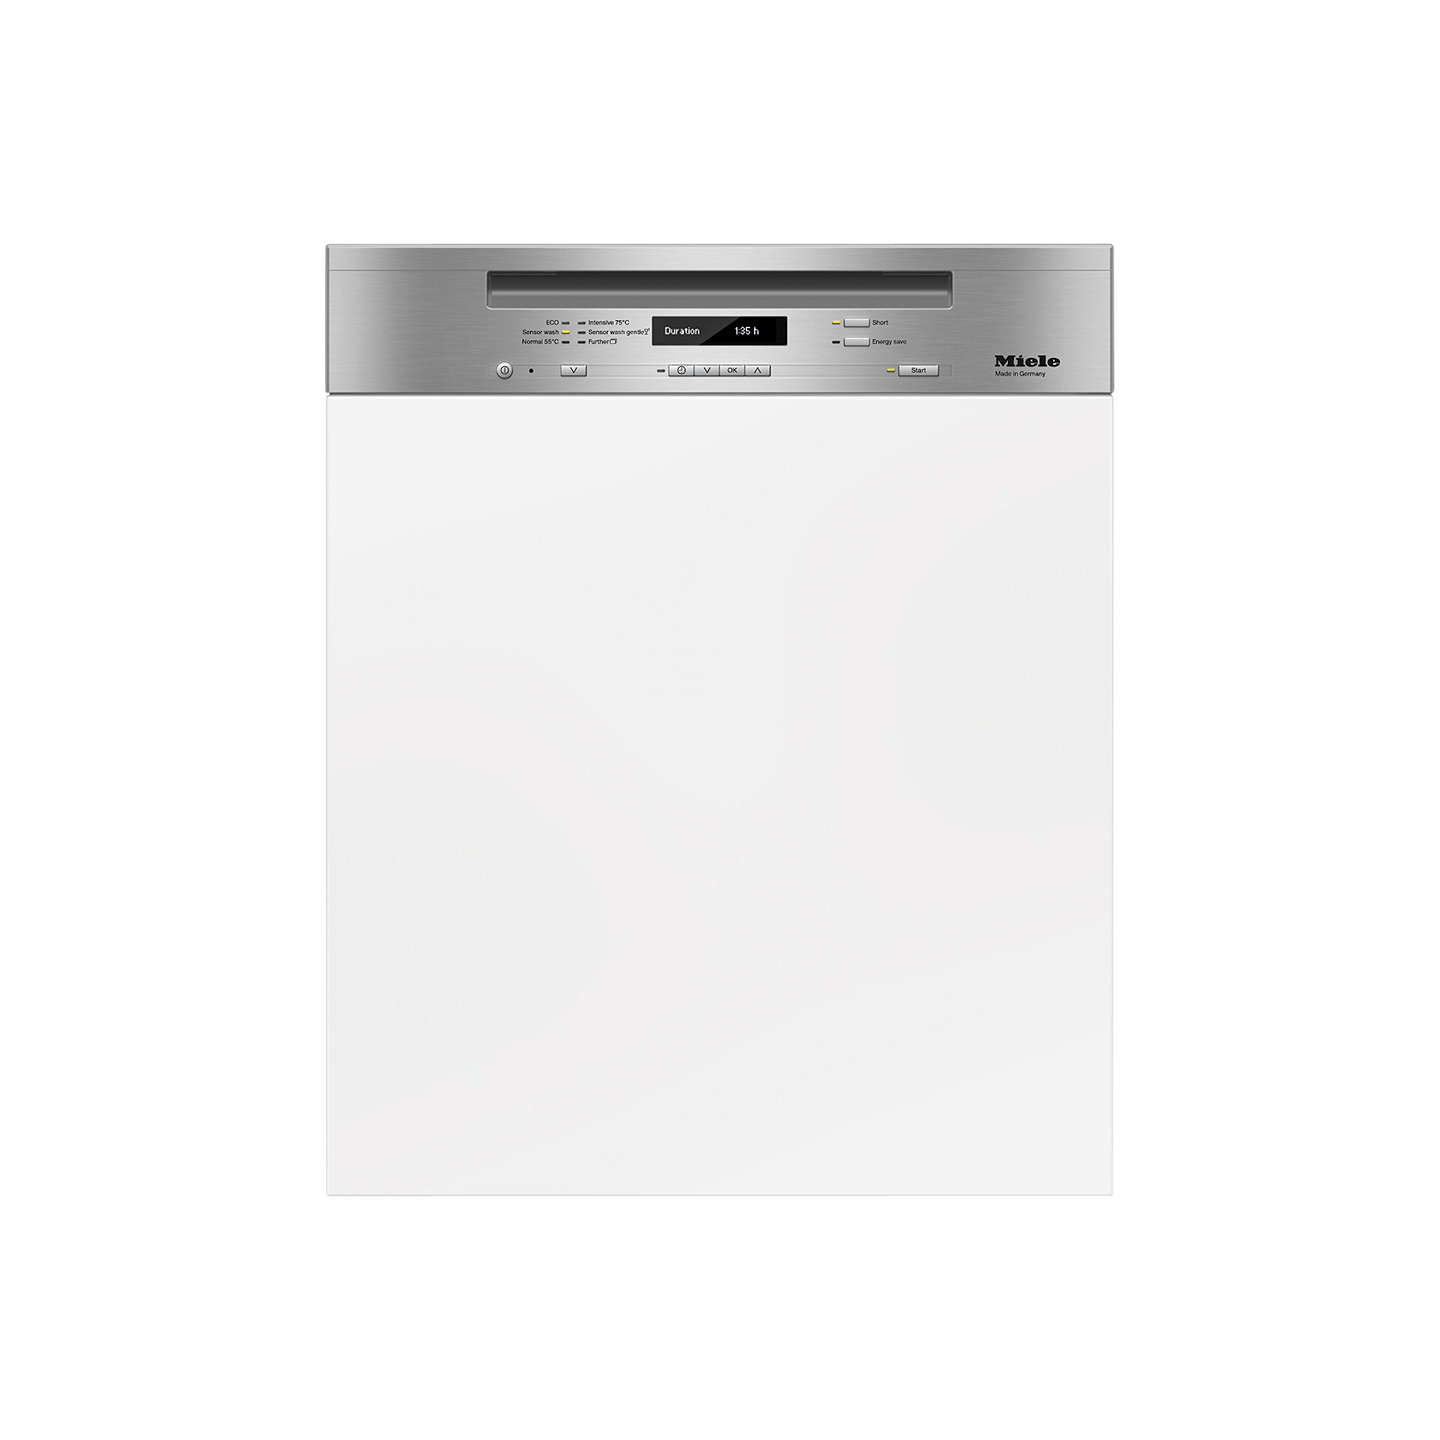 Miele G6410 SCi Semi-Integrated Dishwasher, Clean Steel at John Lewis